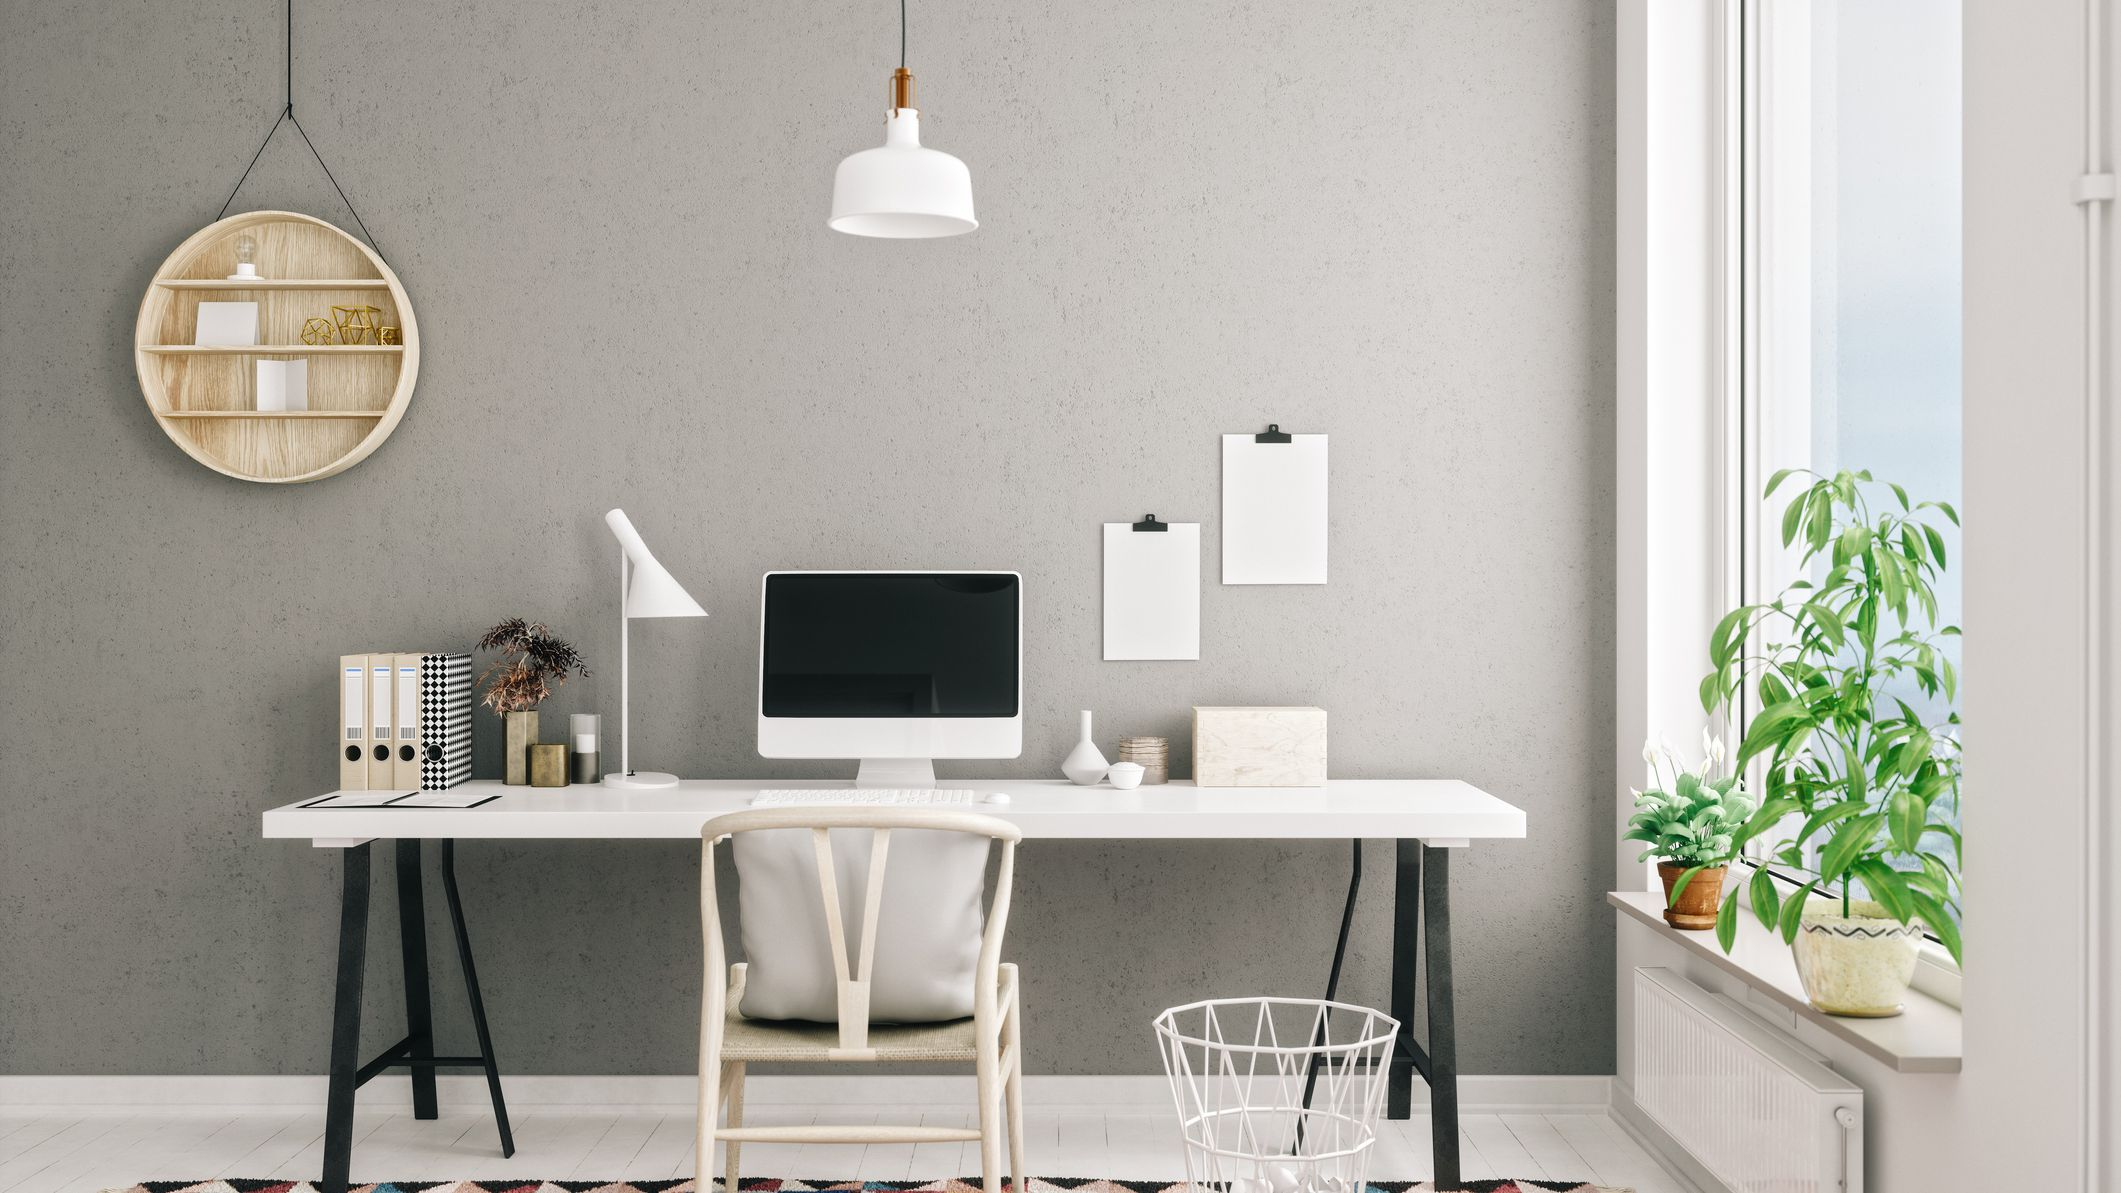 Ideas For Starting A Home Decor Business